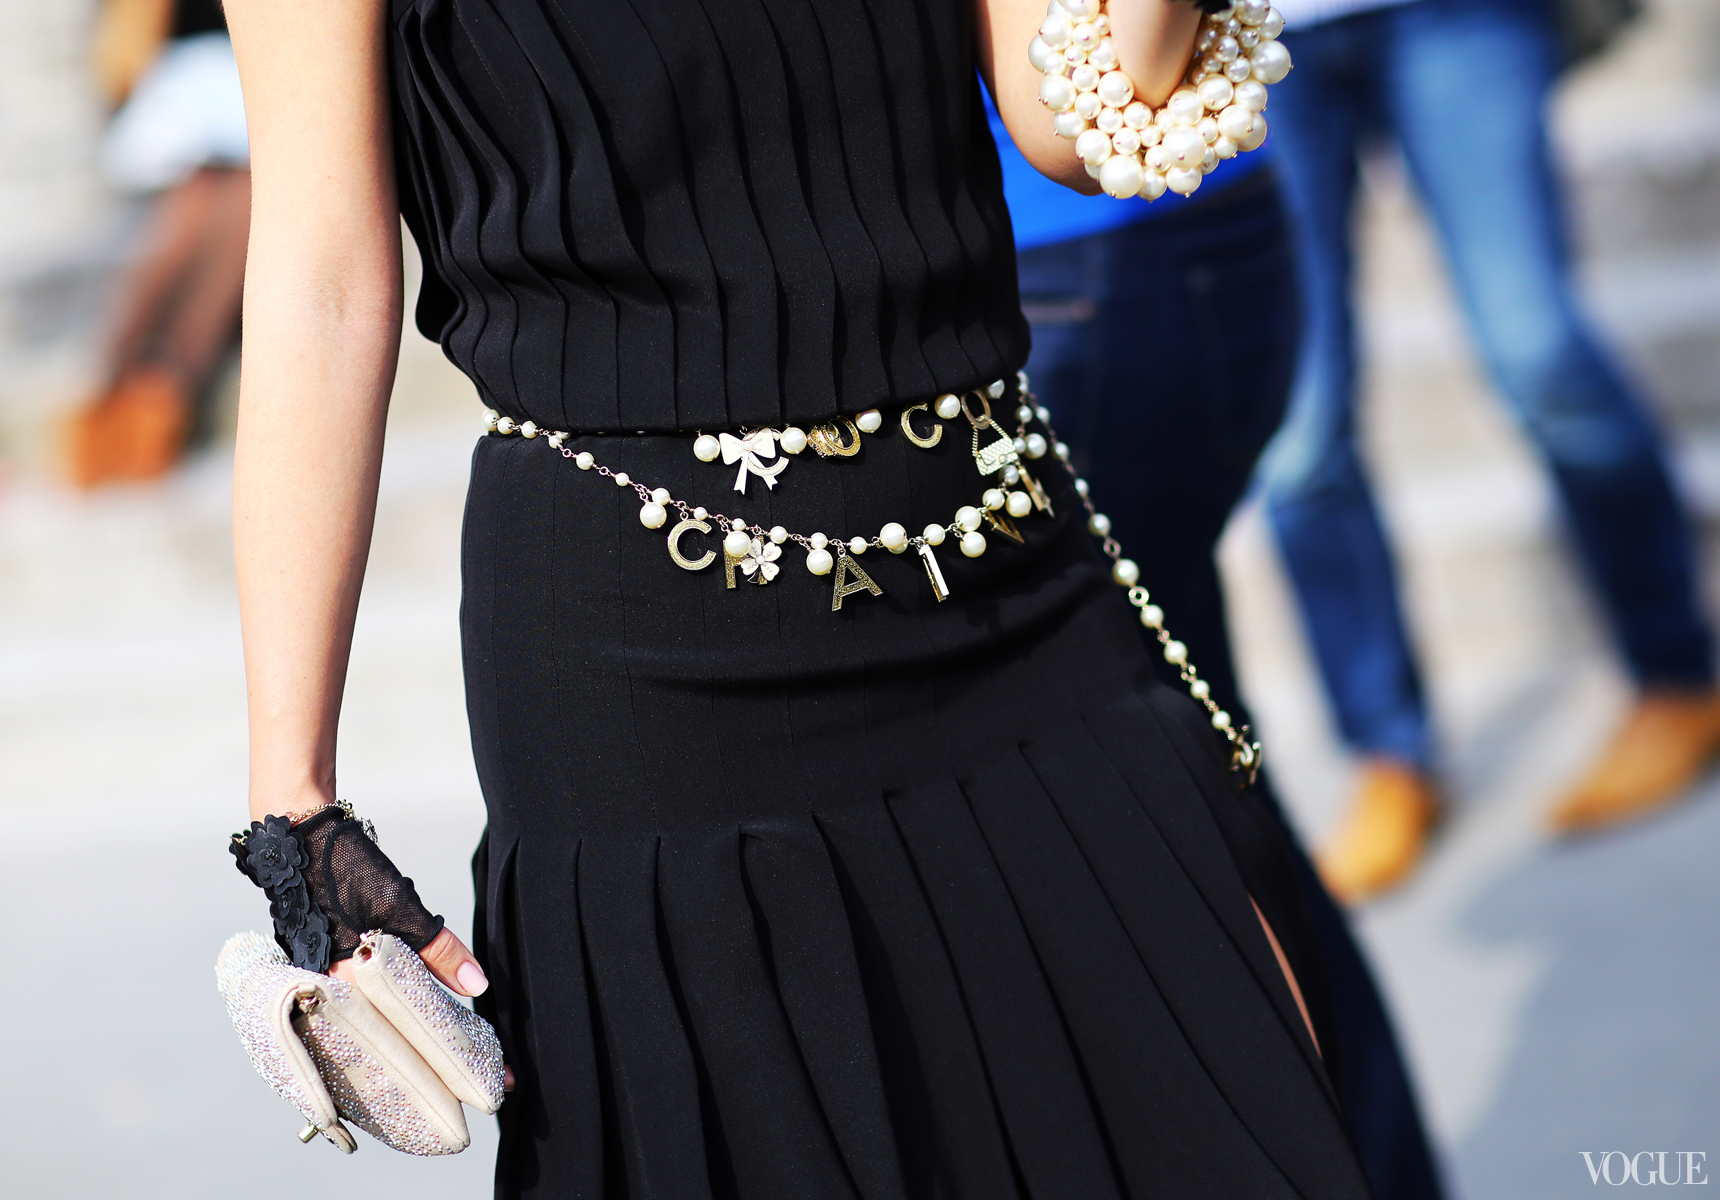 belts-fashion-week-couture-street-style